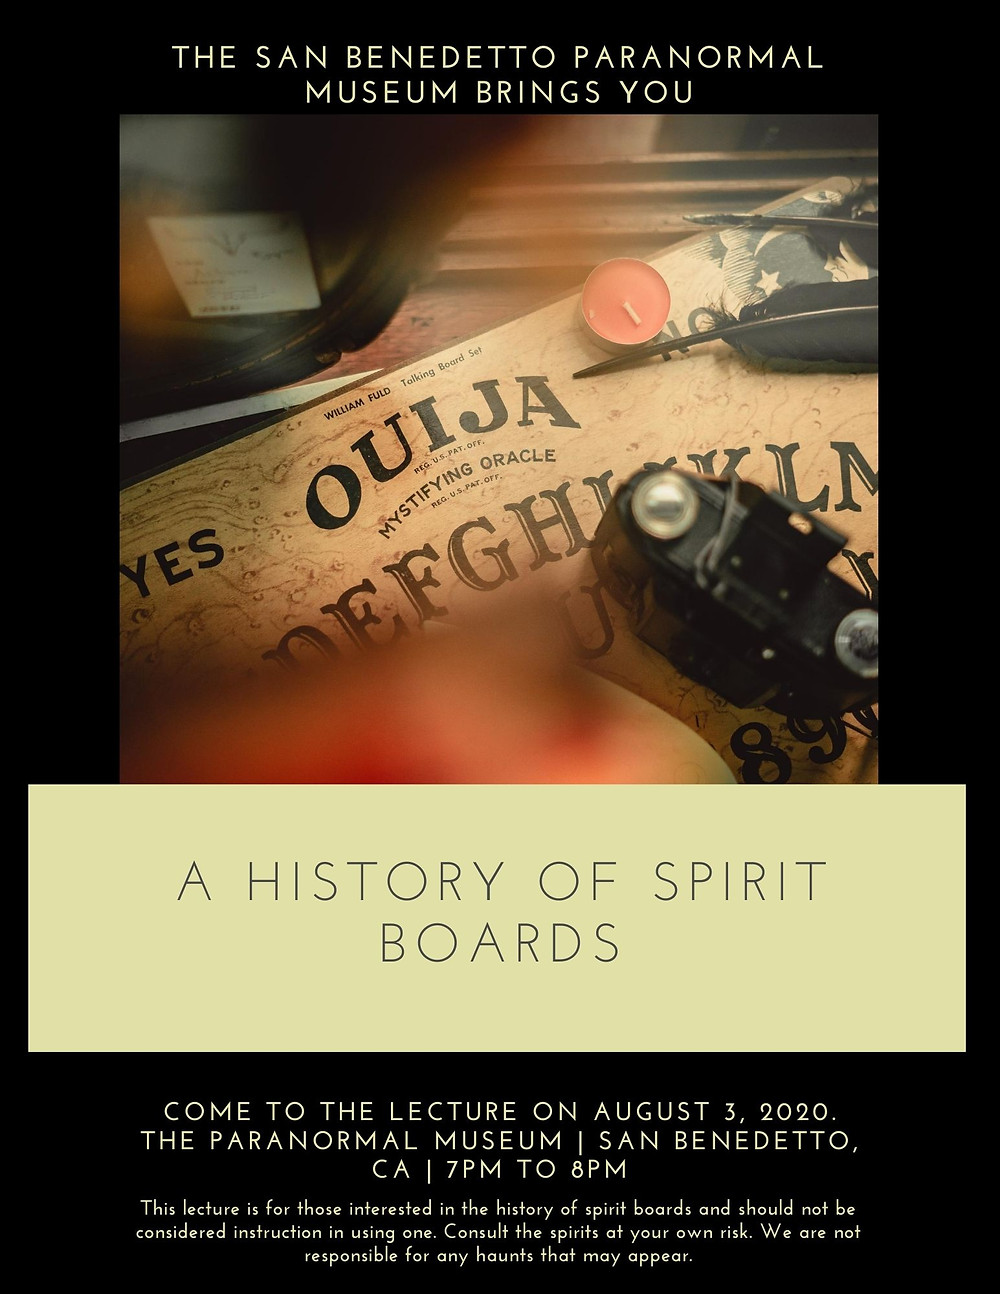 Flyer advertising a history of spirit boards lecture at the san benedetto paranormal museum.